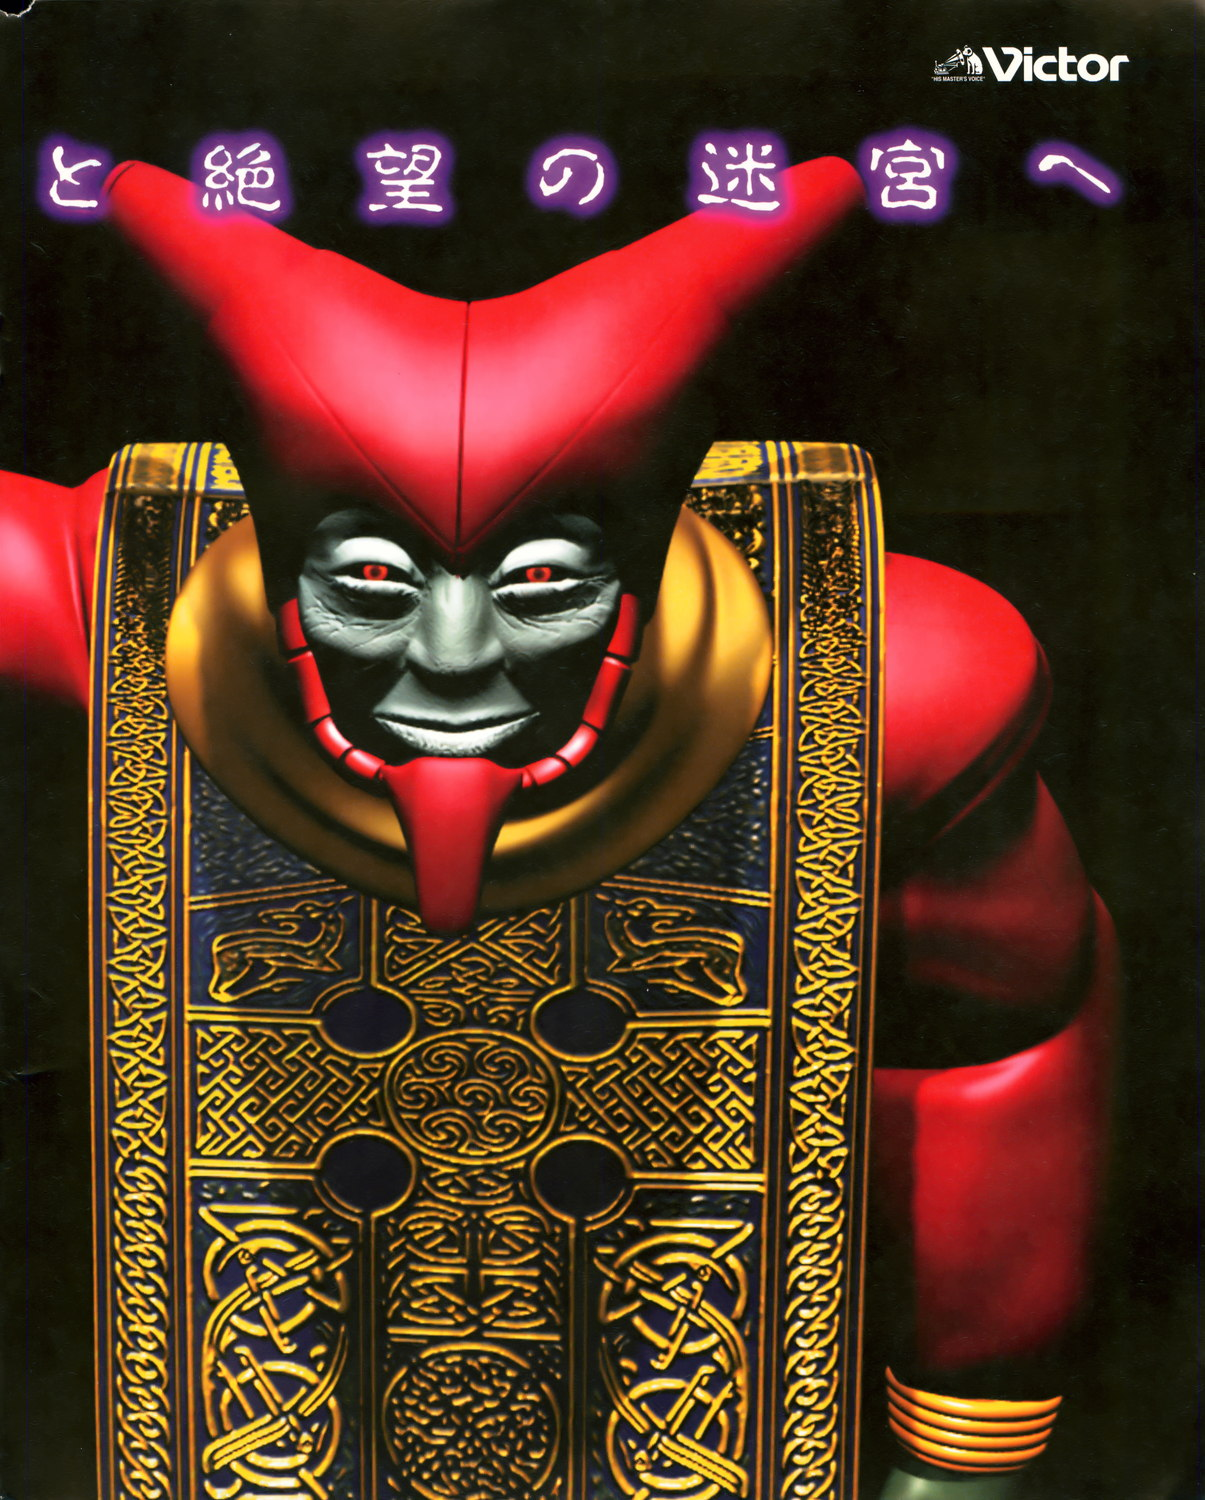 Dungeon Master Nexus Advertisement published in Japanese magazine 'Sega Saturn Magazine', Vol 9 27 March 1998, Page 3